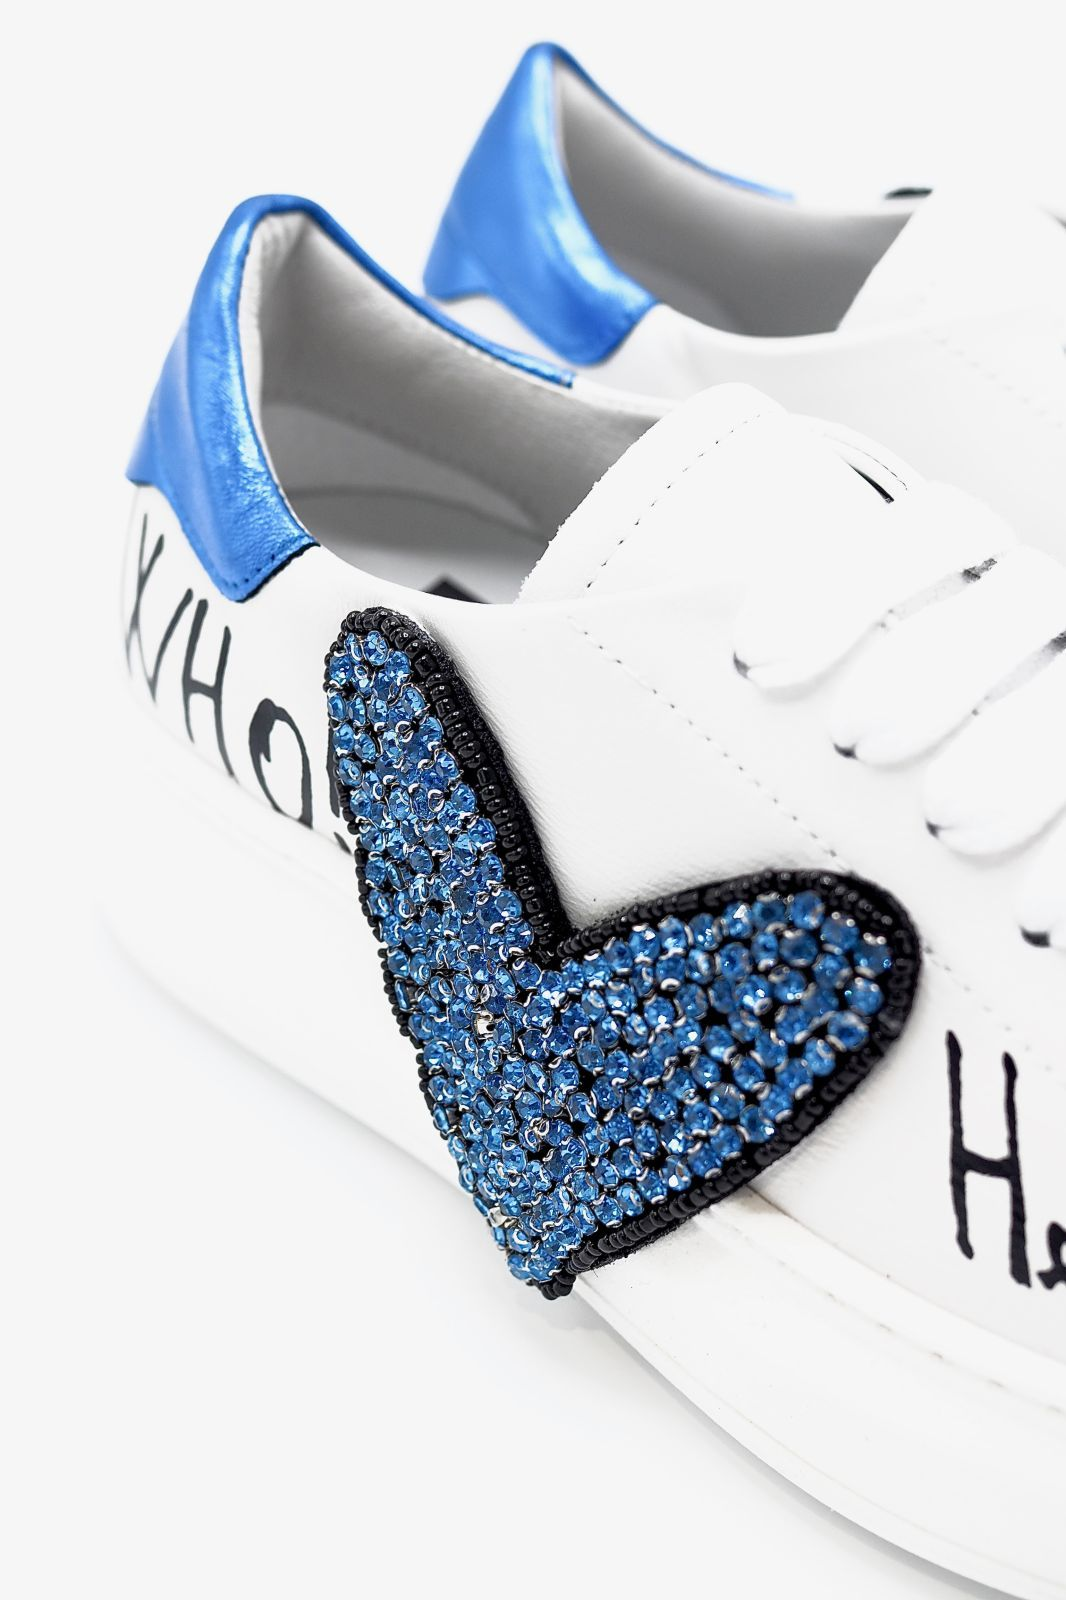 GIO+ basket bas Blanc femmes (GIO+-Coeur Bleu - G10 blanc + COEUR bleu strass) - Marine | Much more than shoes